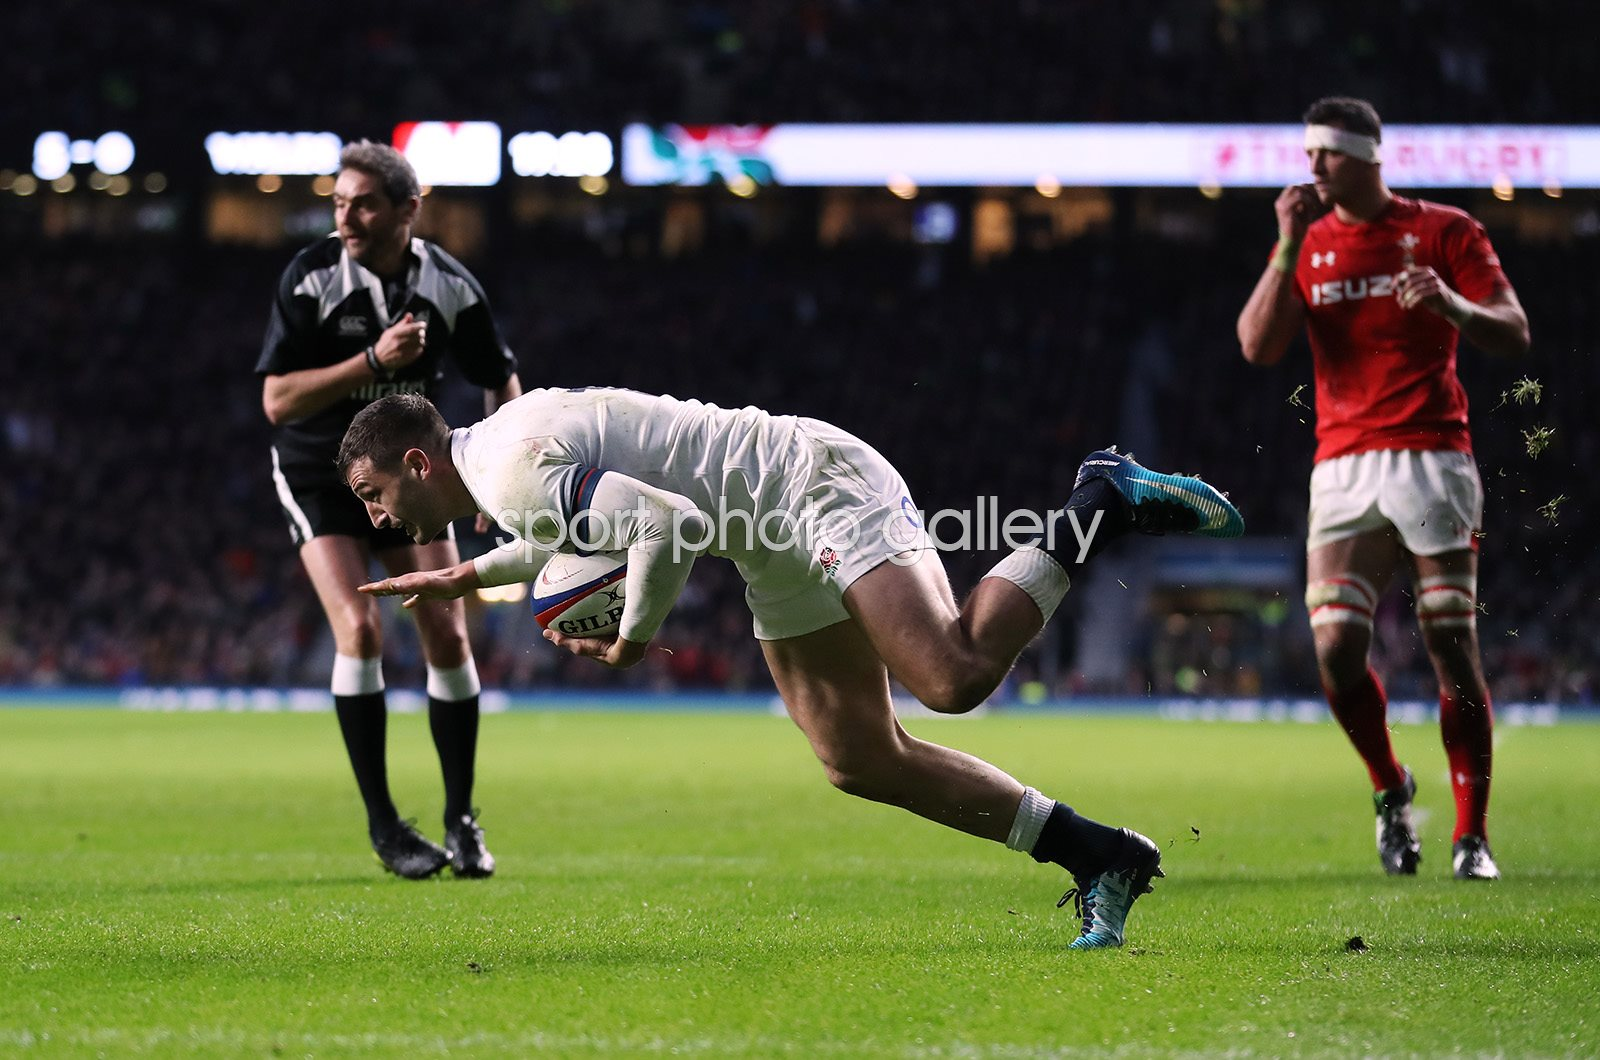 Jonny May England scores v Wales Twickenham Six Nations 2018